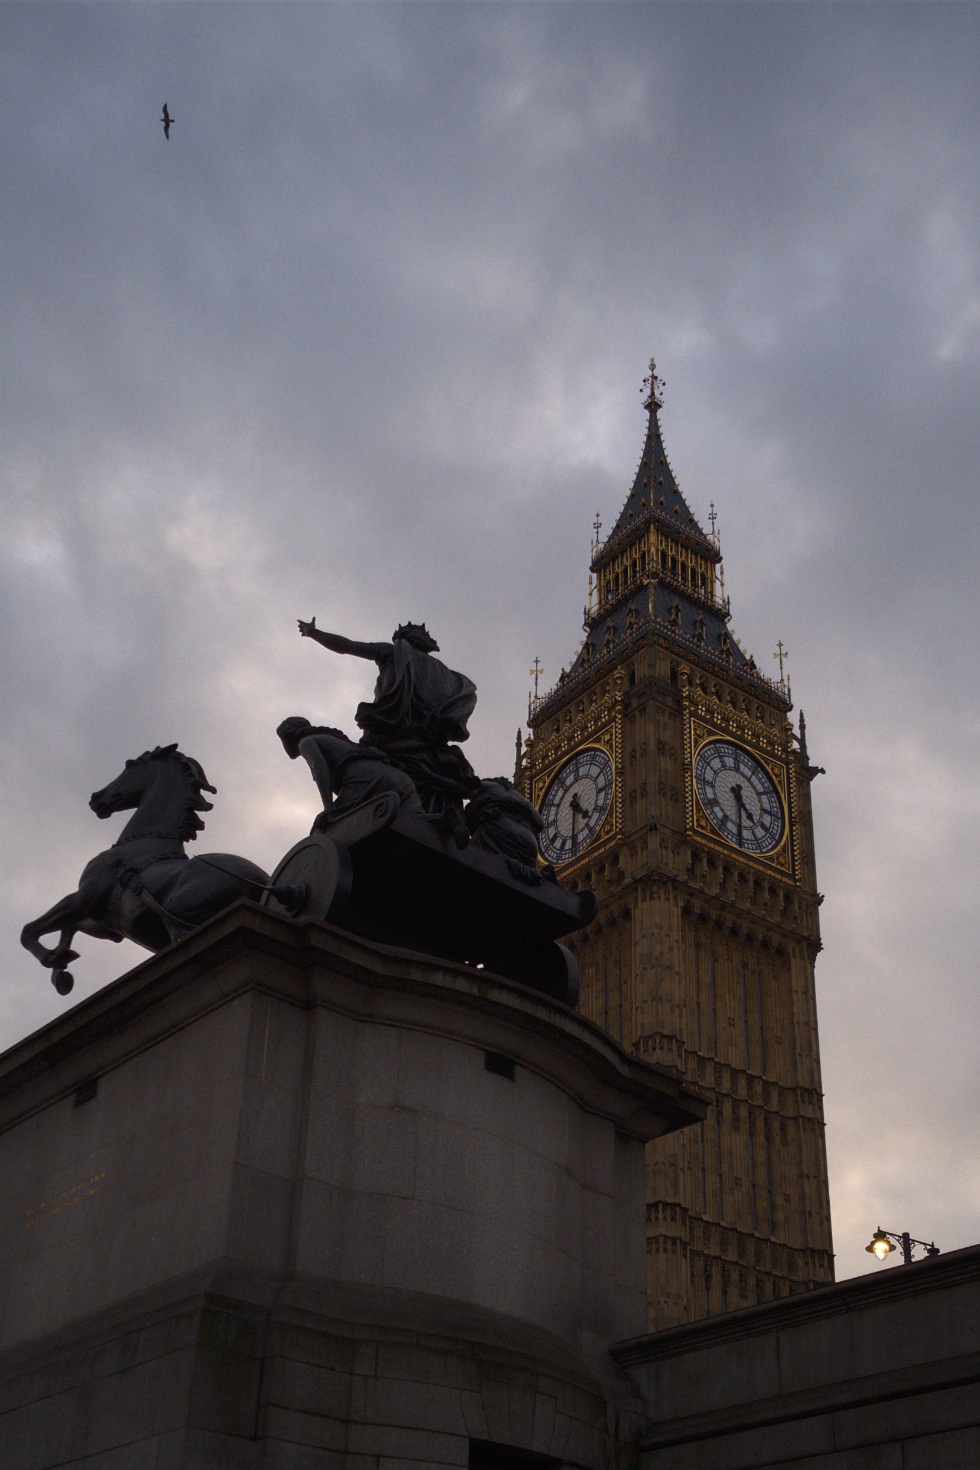 Statue of Boudicca and Elizabeth (Clock) Tower, Westminster, London, photographed on 26 February 2016